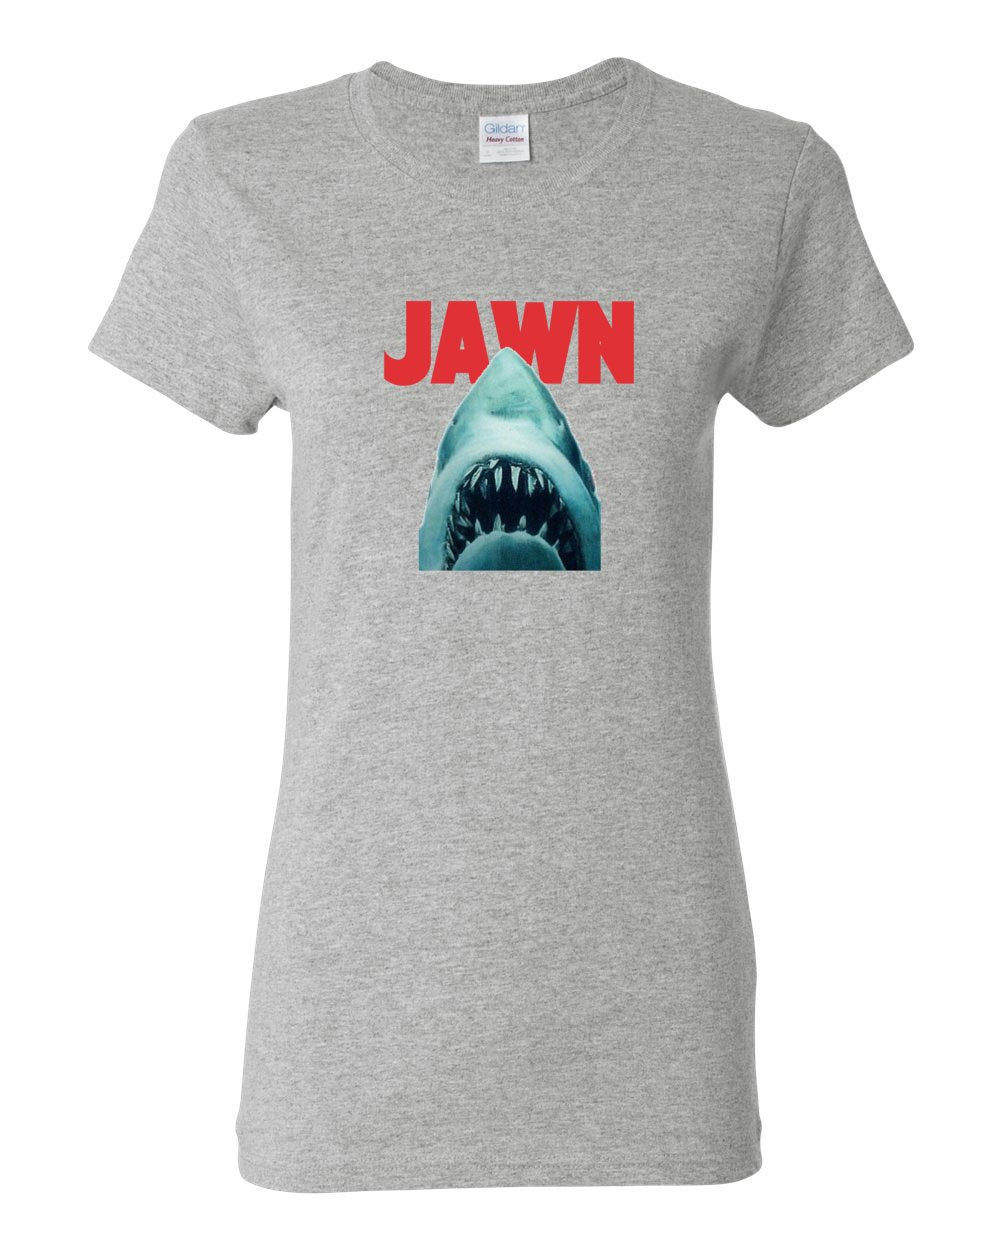 Jaws Jawn LADIES Missy-Fit T-Shirt